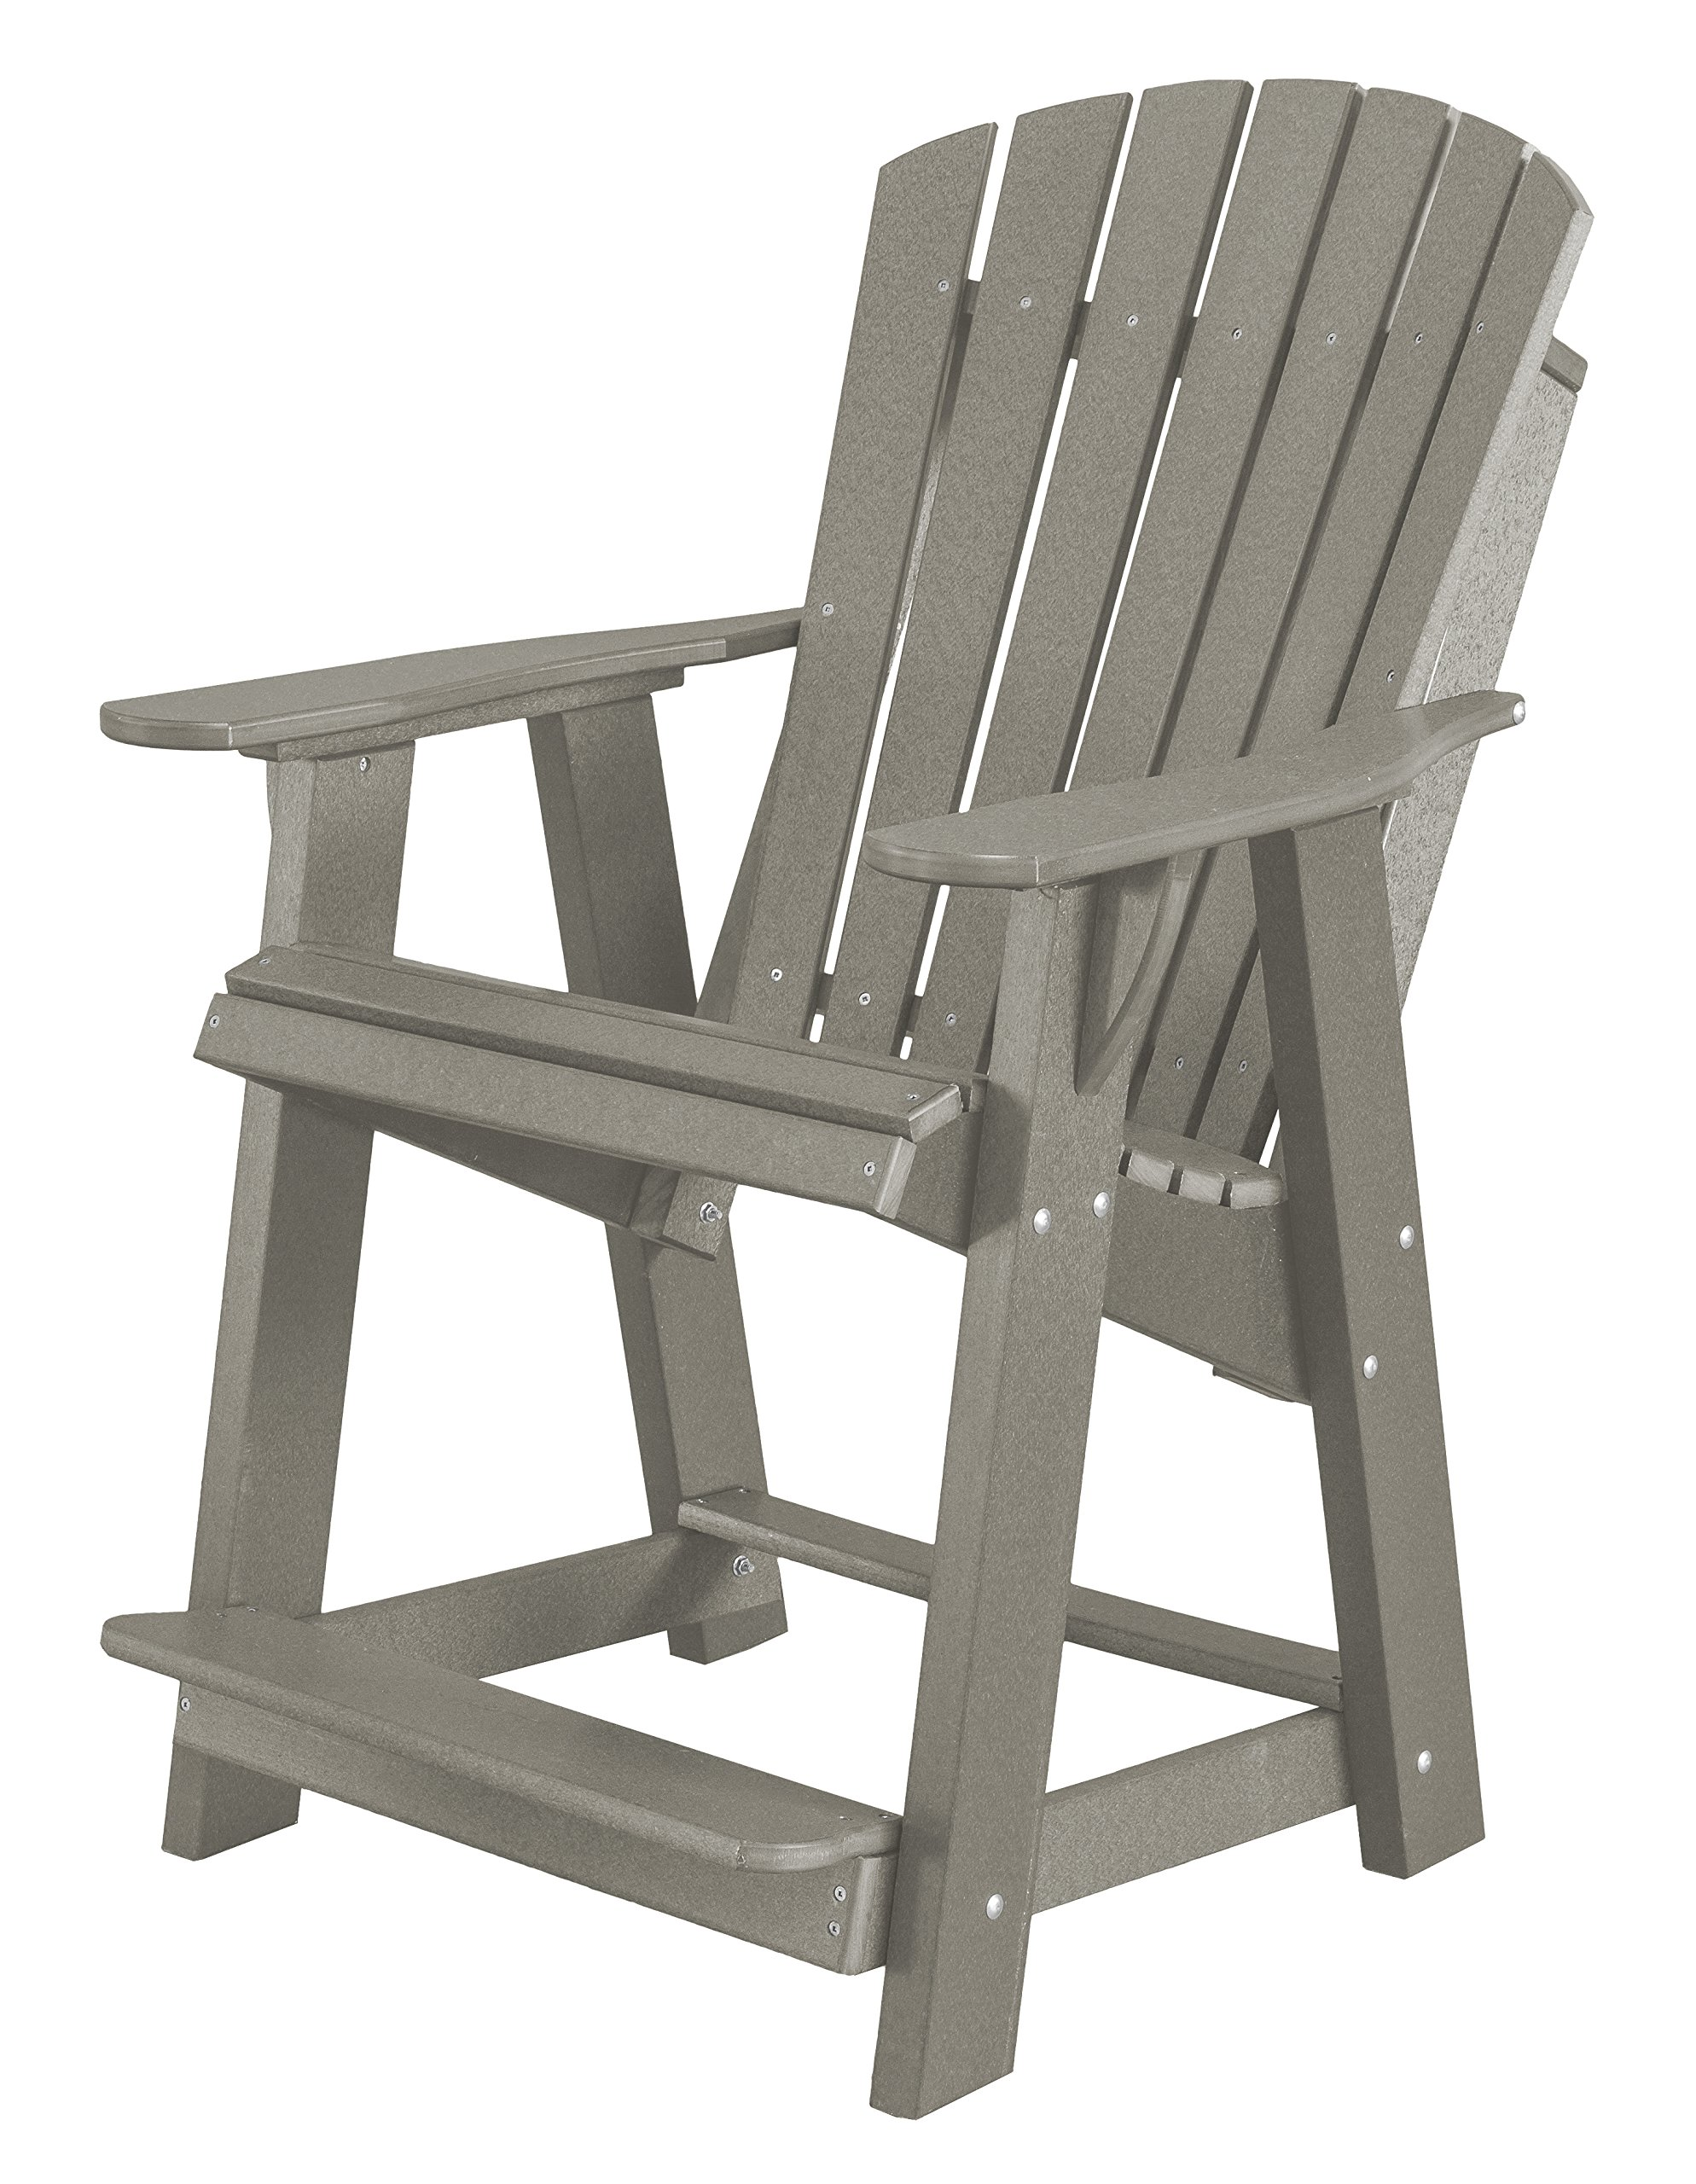 Little Cottage Company Lcc-119 Heritage High Adirondack Chair, Light Gray by Little Cottage Company